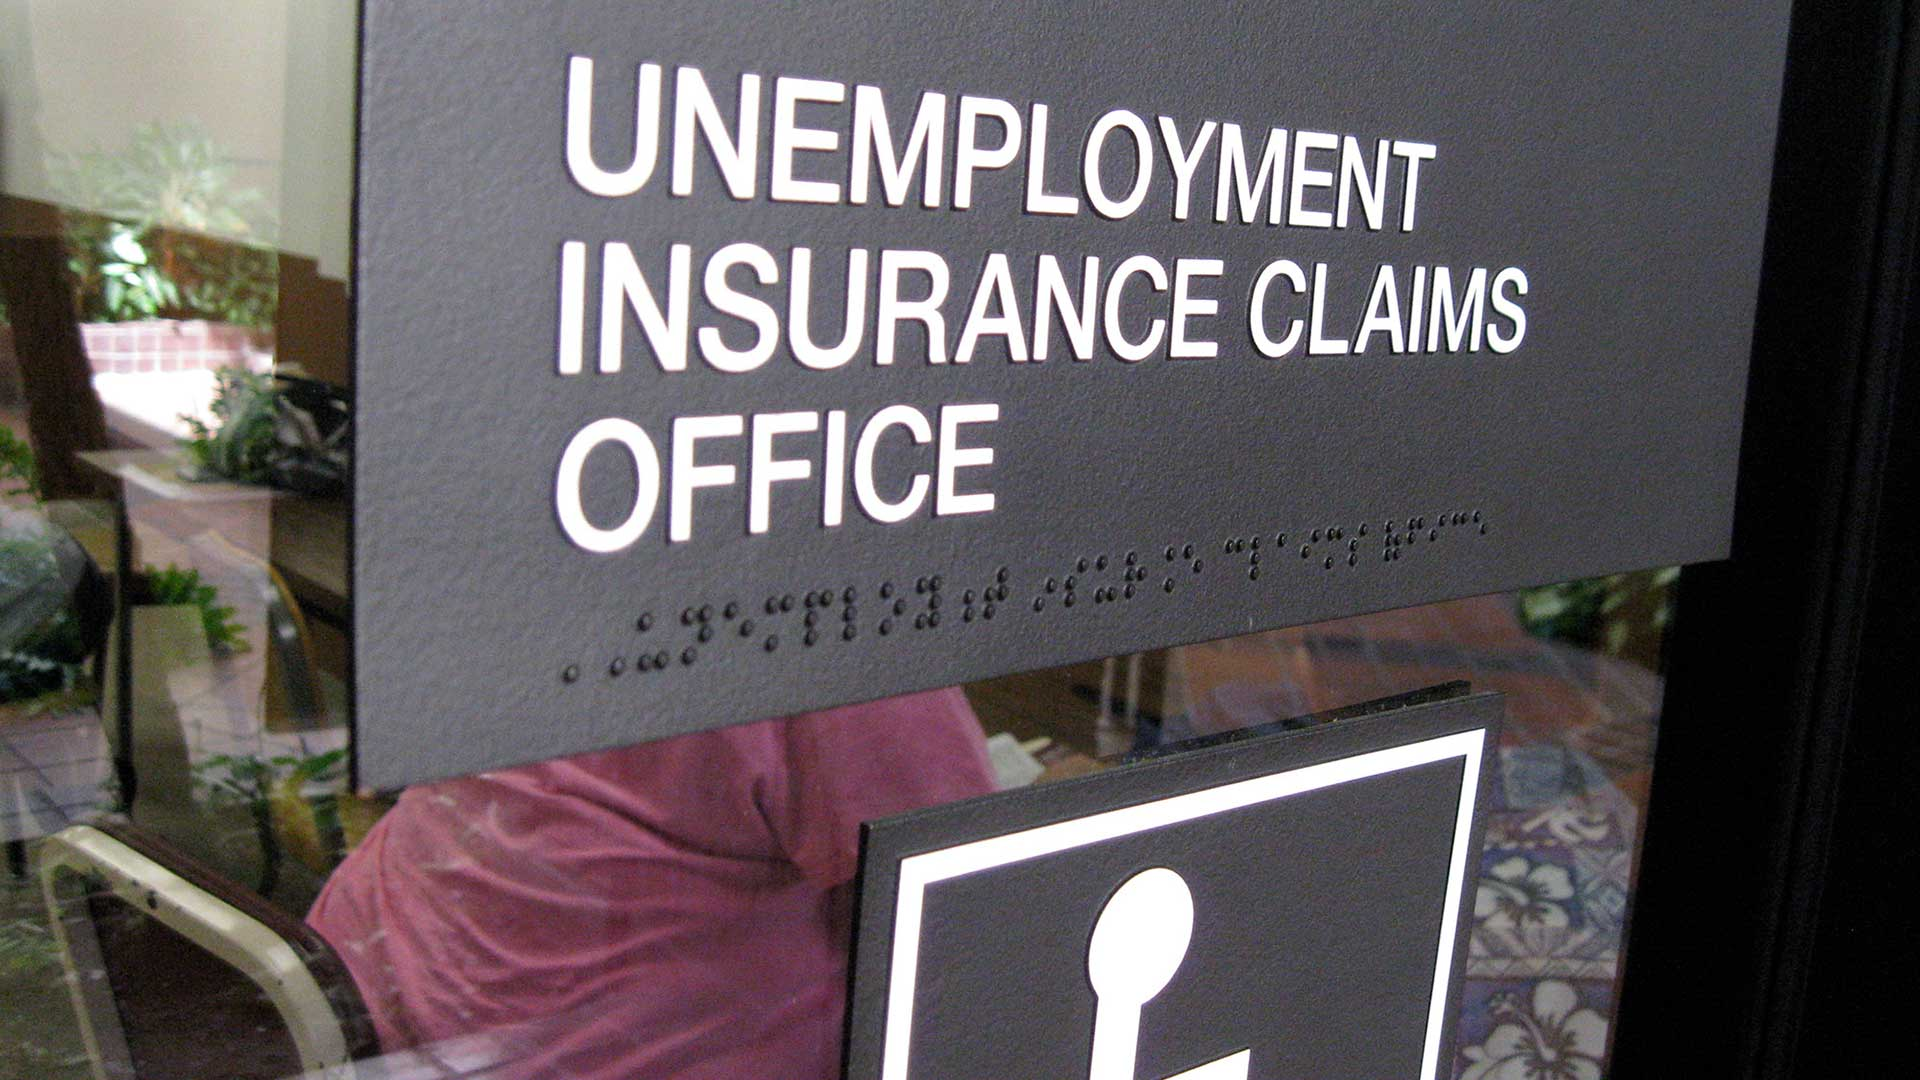 Jobless claims in Arizona jumped to more than eight times their normal level last week, to 29,000, as the first wave of layoffs from businesses affected by COVID-19 changes hit the state. In a typical week, about 3,500 claims are filed, state officials said.